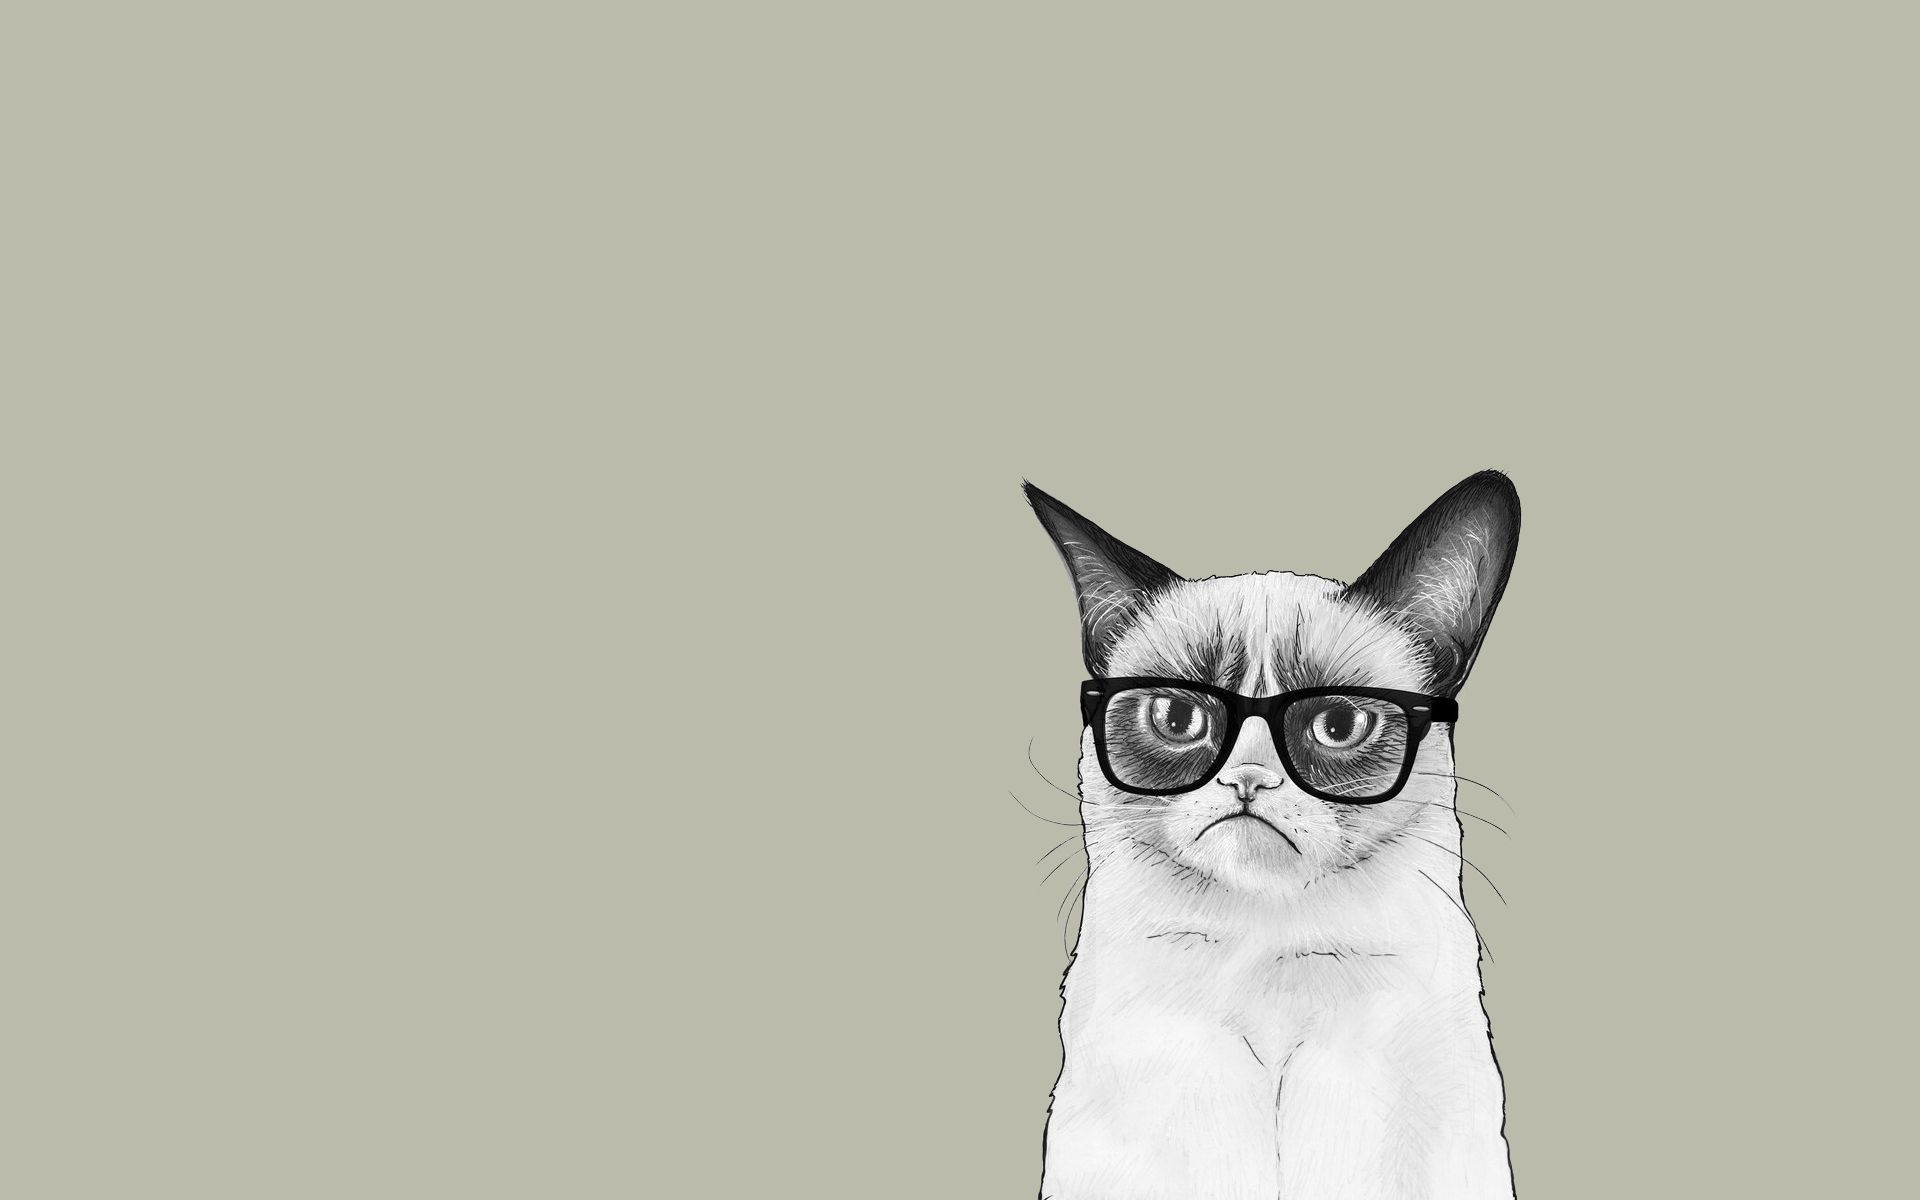 Cat pastel laptop wallpapers top free cat pastel laptop - Cat wallpaper cartoon ...